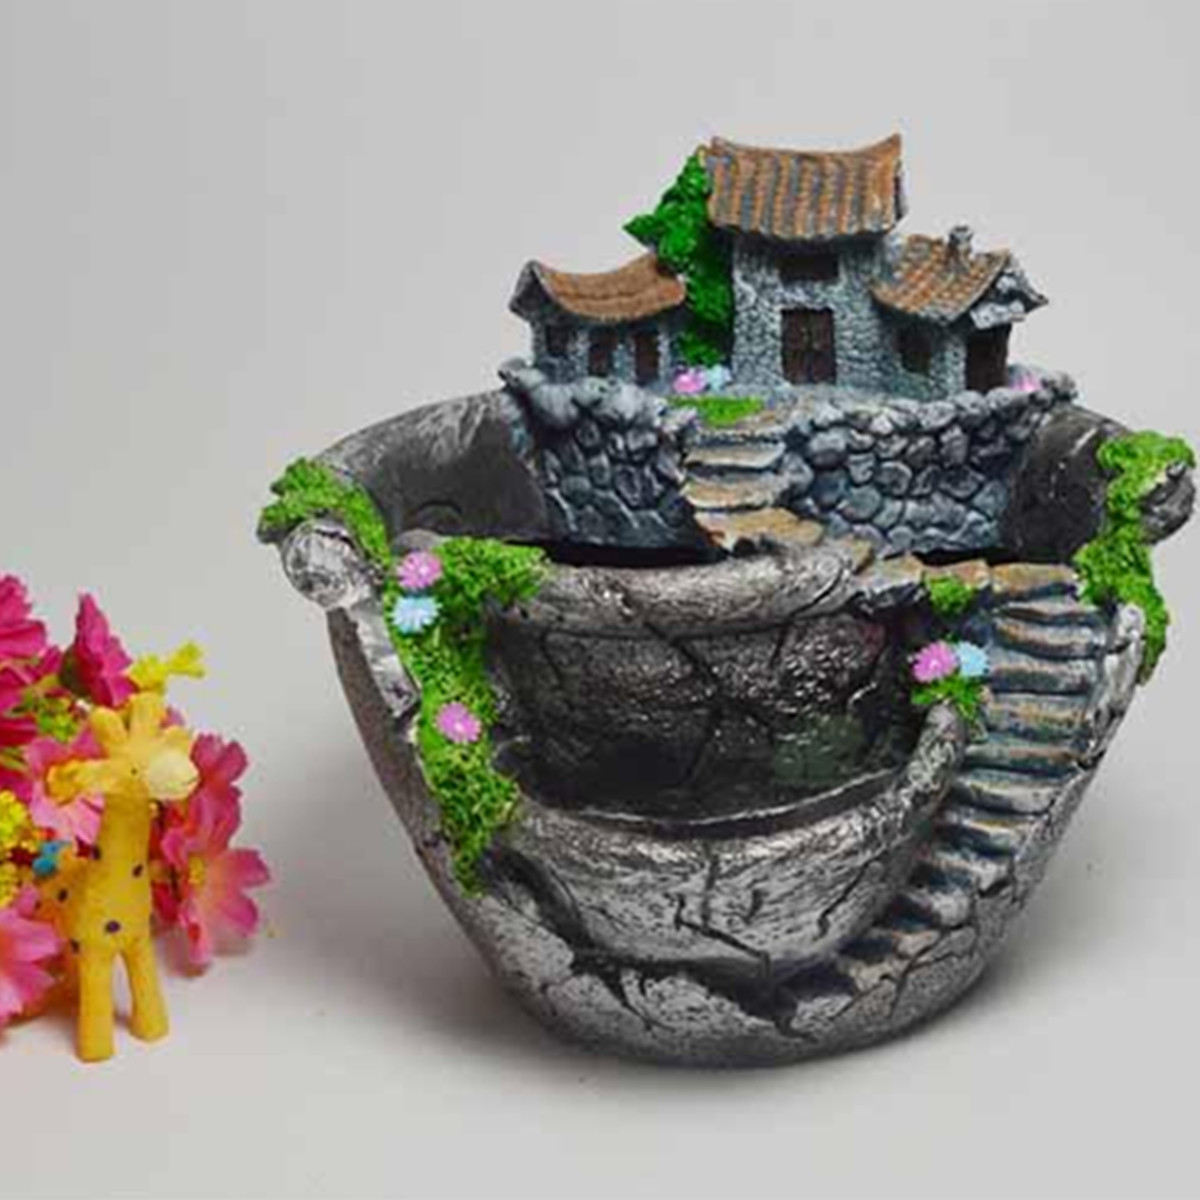 sky garden planter herb flower cactus succulent clay pot basket box case decor ebay. Black Bedroom Furniture Sets. Home Design Ideas